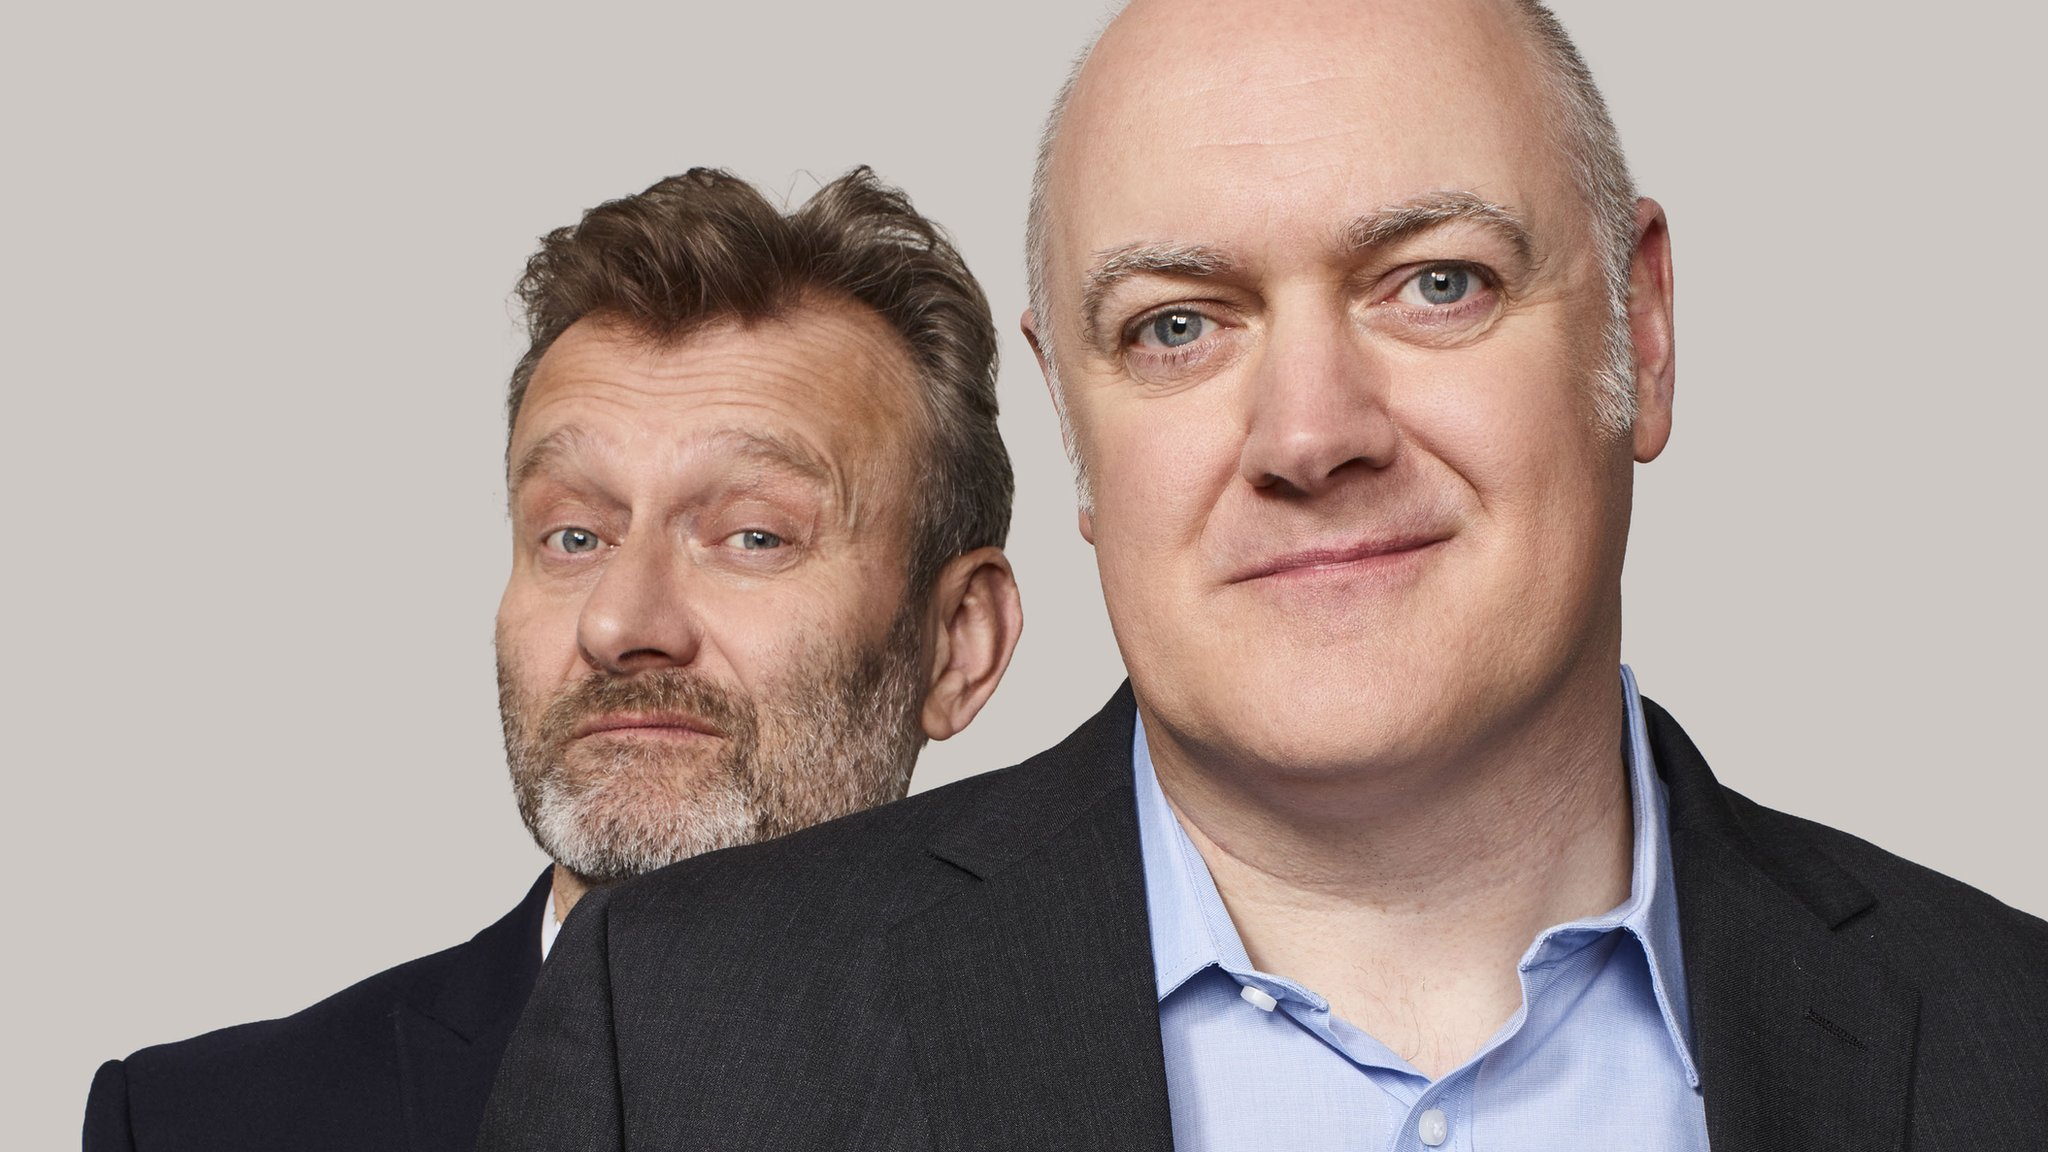 Dara Ó Briain on why comedians are reluctant to do Mock The Week